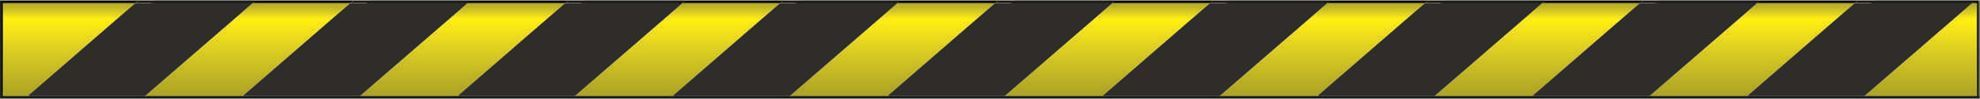 Barrier Tapes Non-adhesive - Yellow & Black